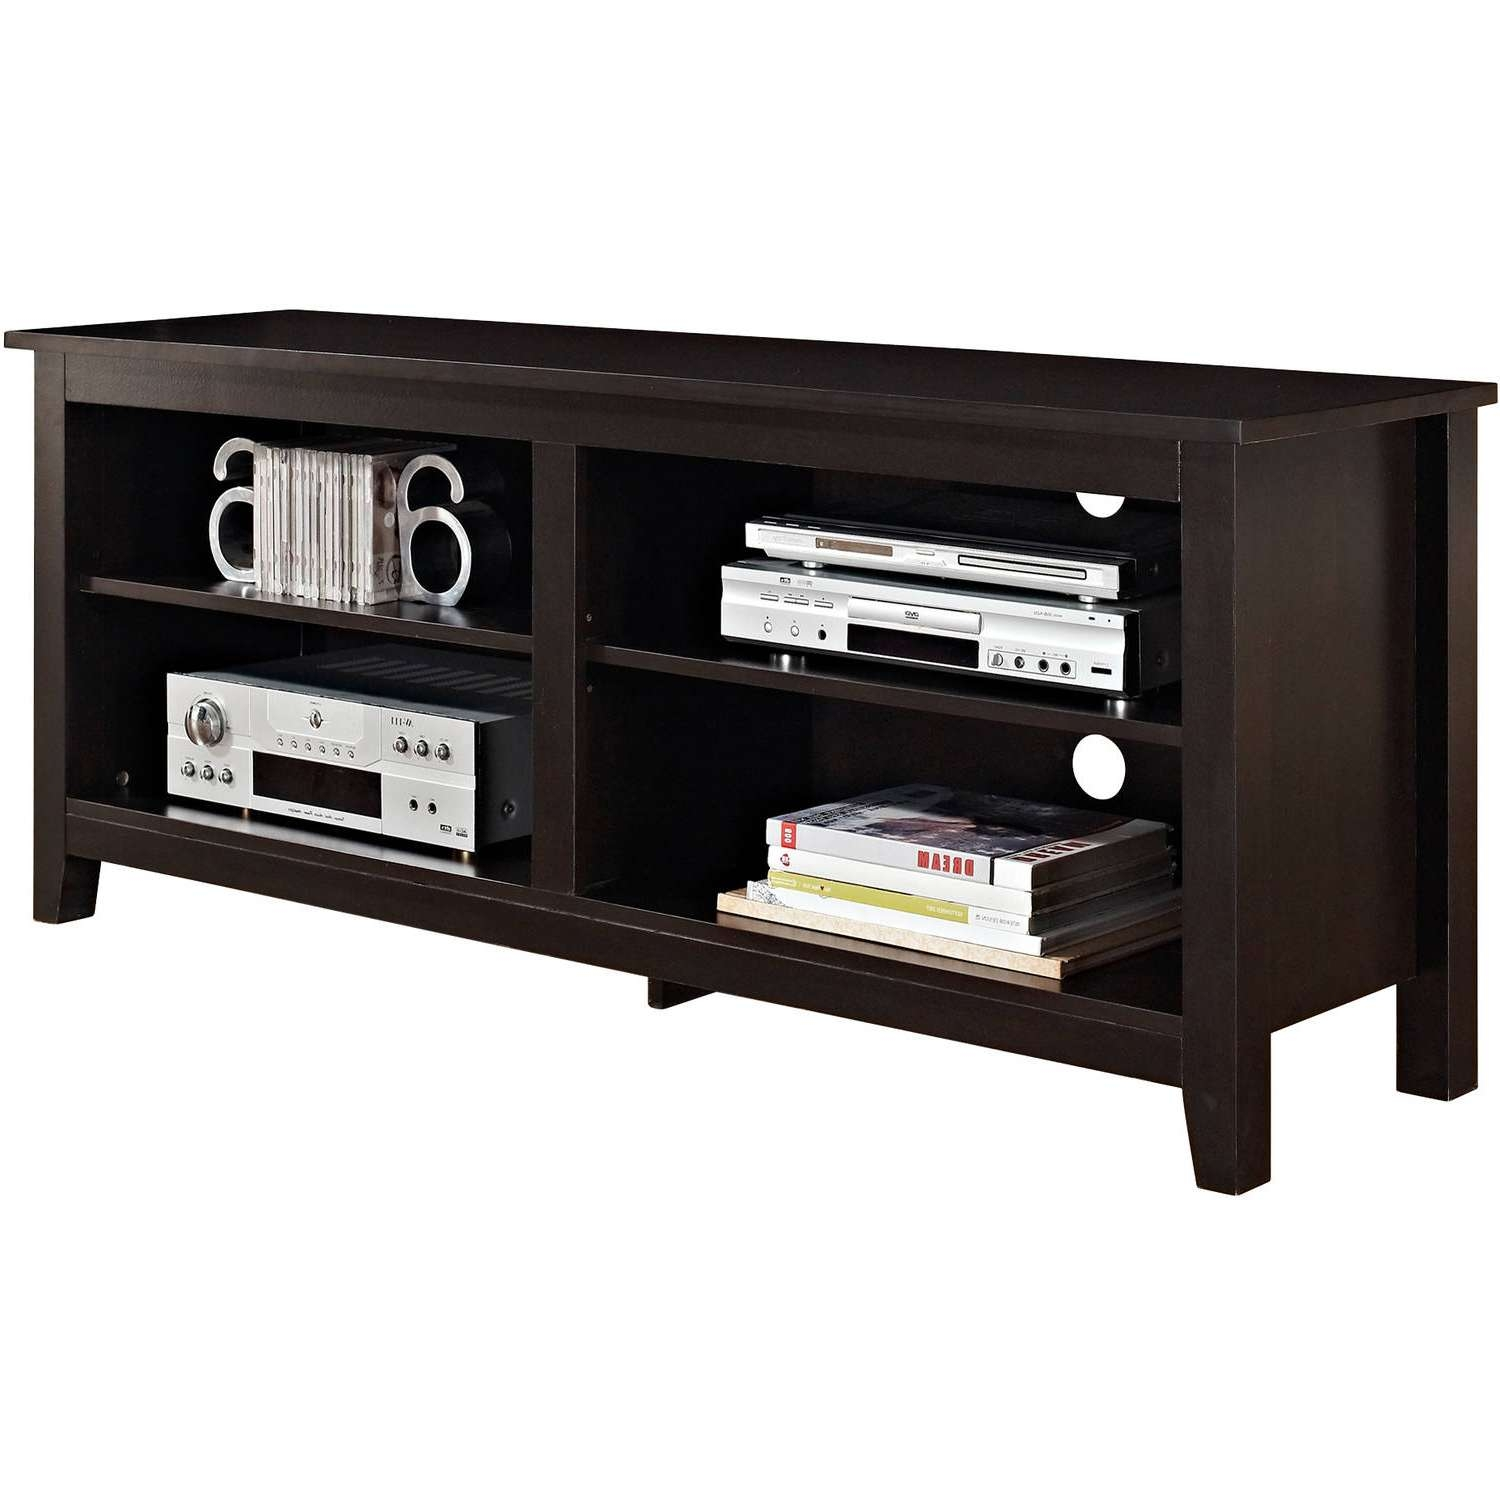 """Wood Tv Stand For Tvs Up To 60"""", Espresso – Walmart For Wooden Tv Stands (View 15 of 15)"""